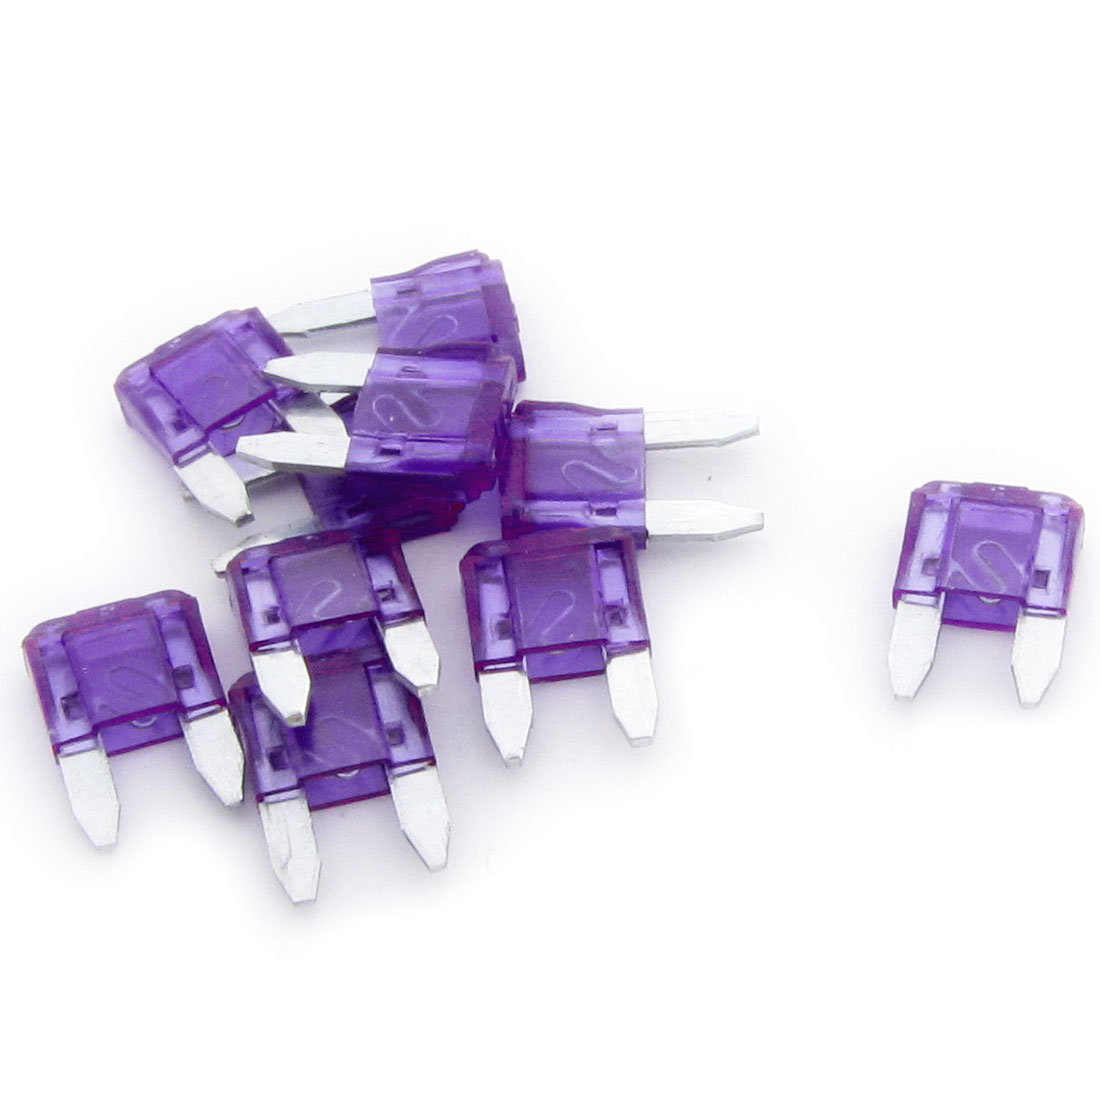 10 Pcs Purple Plastic Housing 3A Vehicle Car Auto Blade Fuses